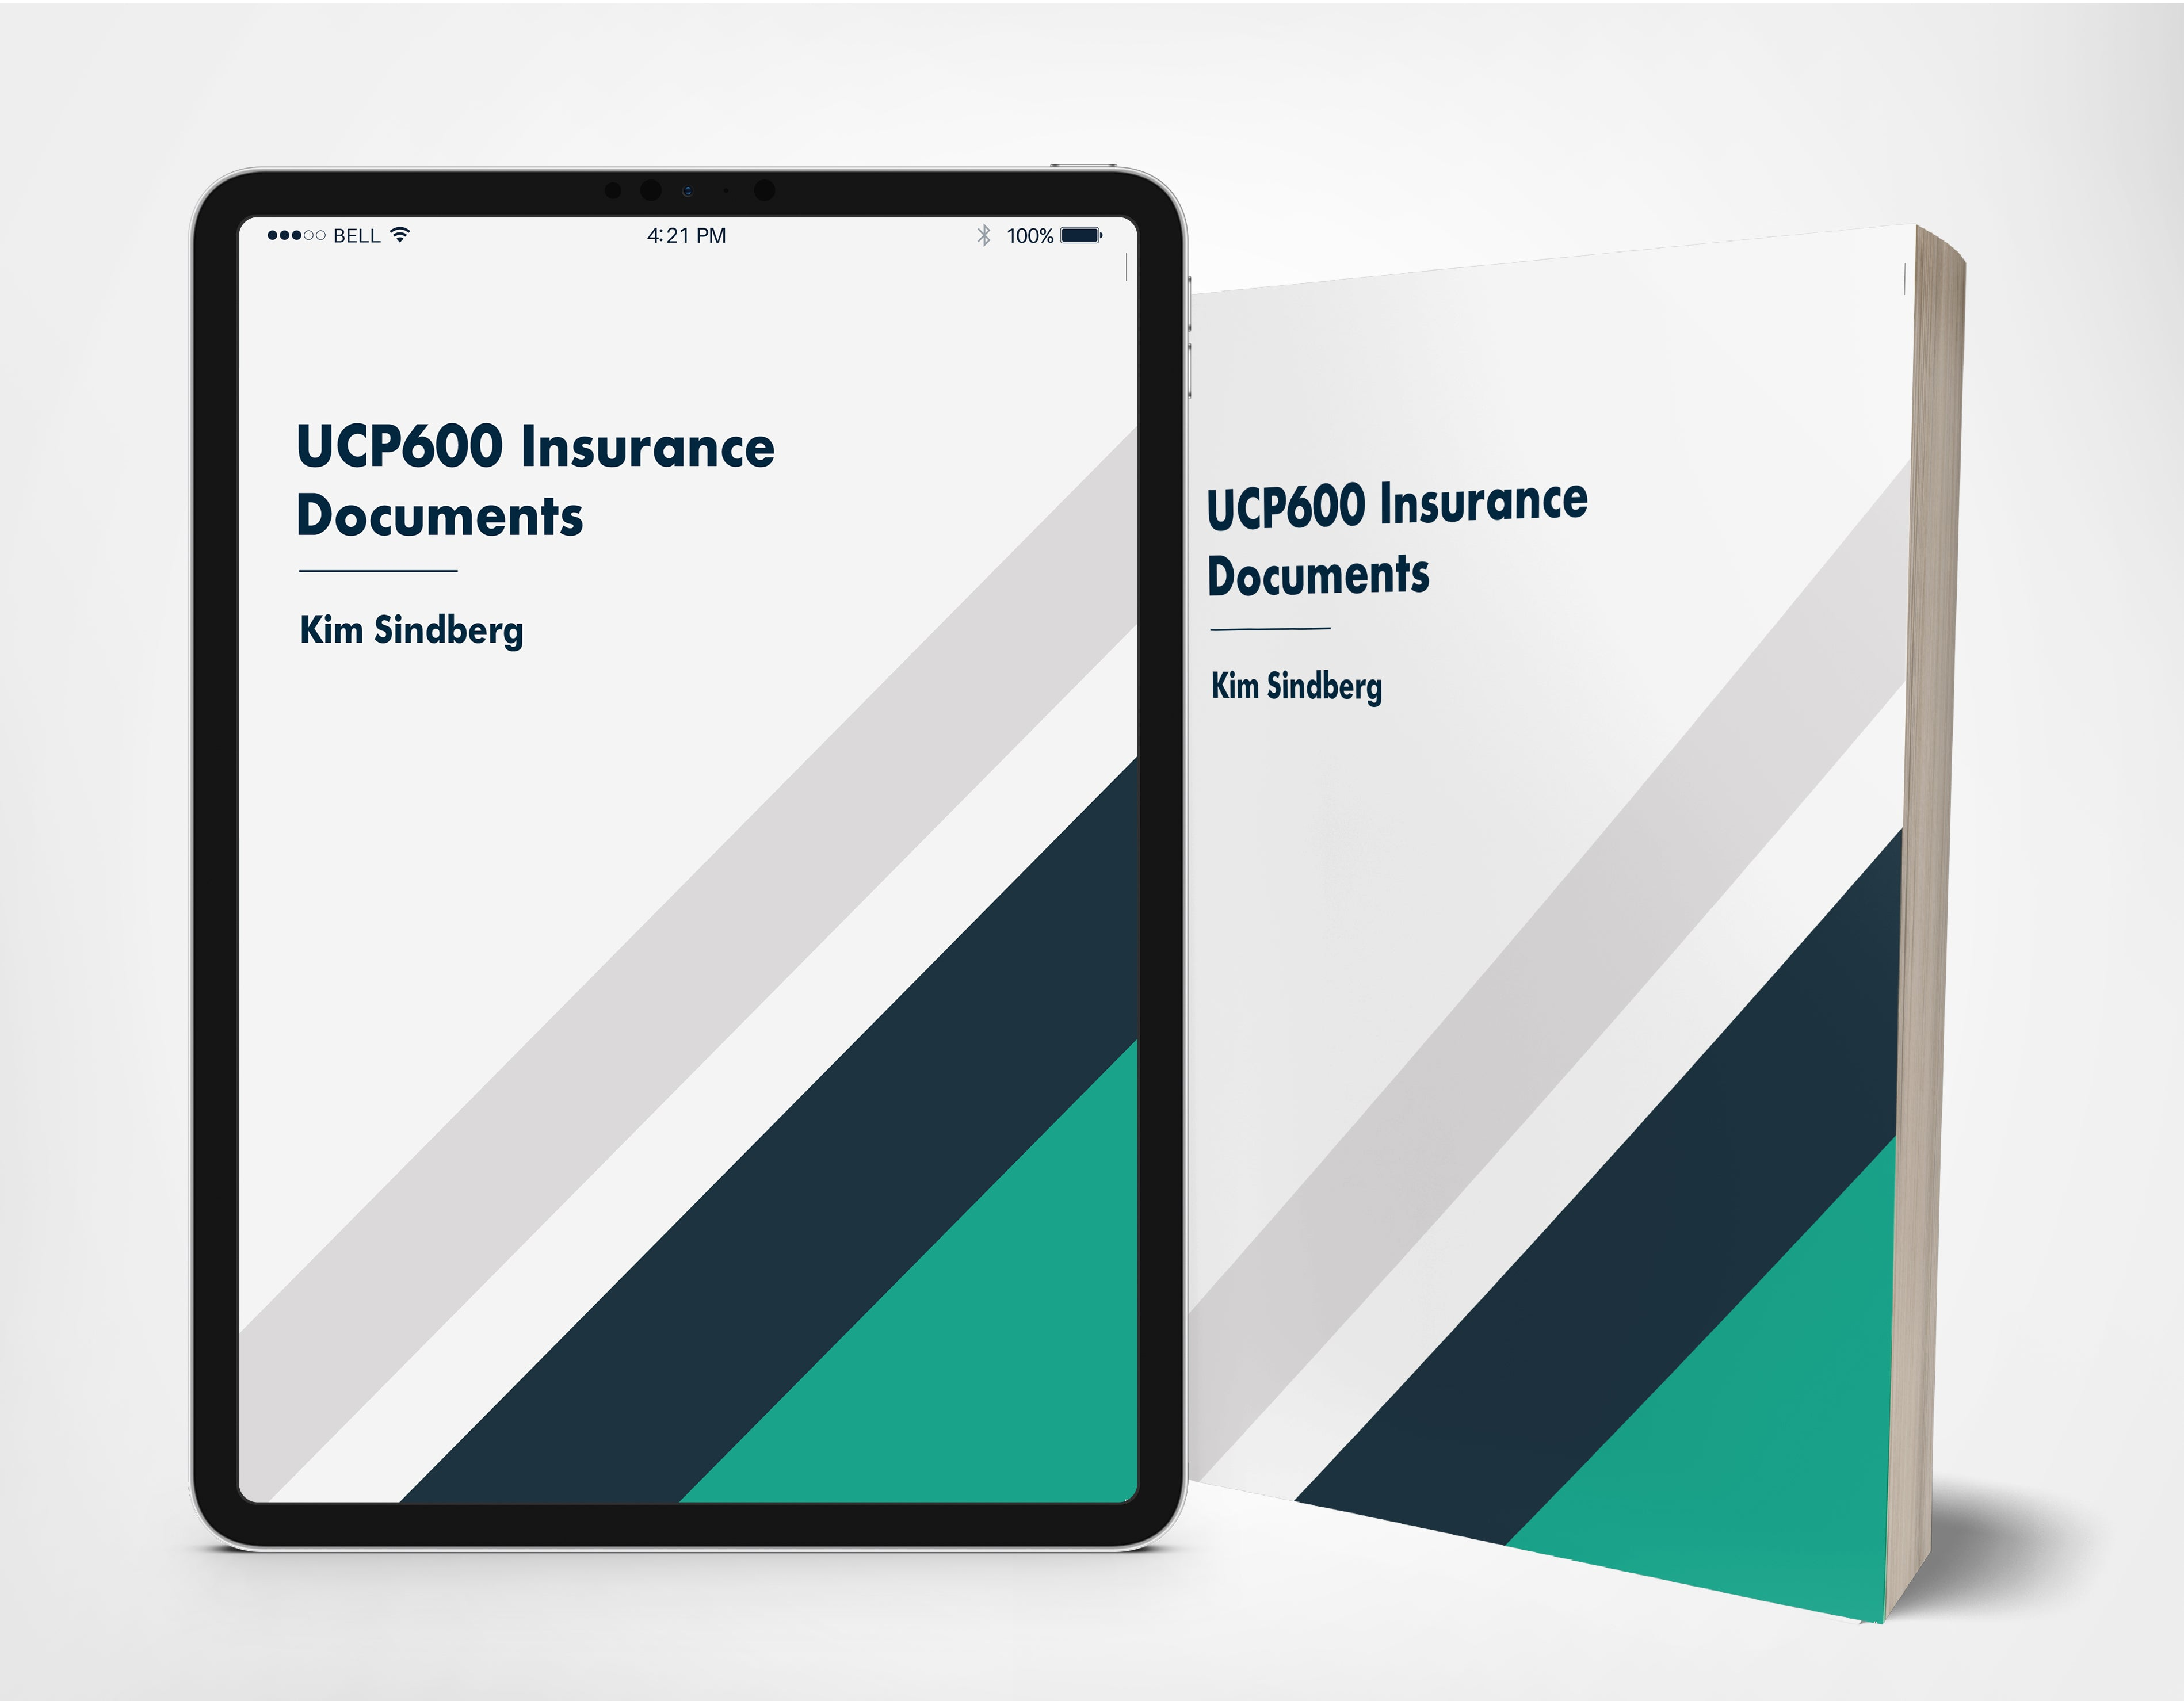 UCP600 Insurance Documents